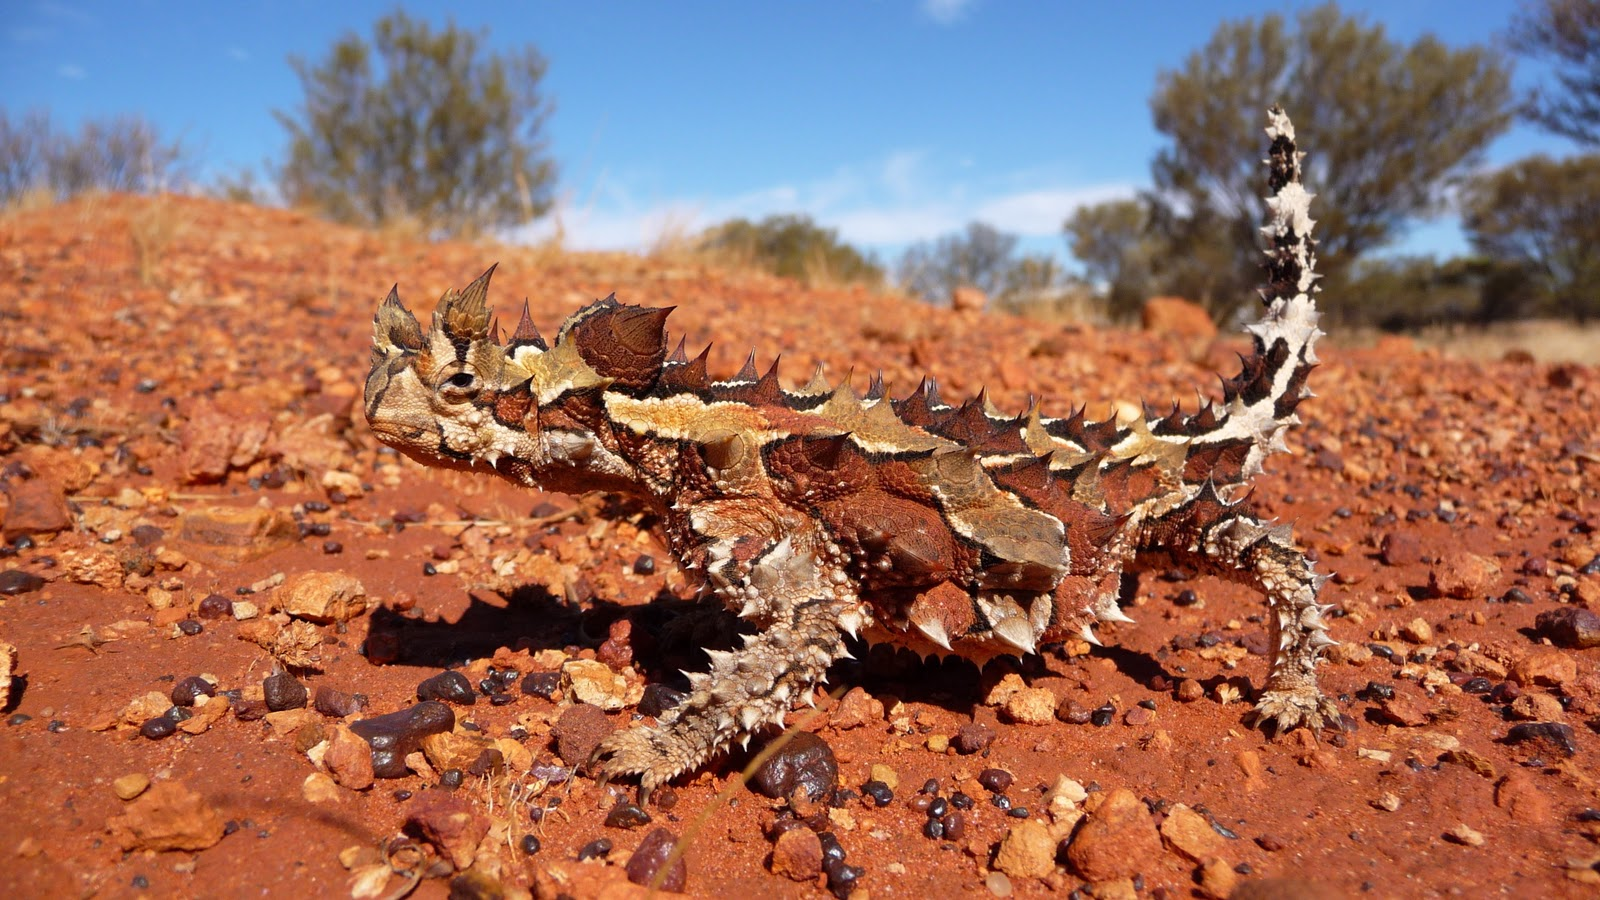 Thorny devil By Christopher Watson (httpwww.comebirdwatching.blogspot.com) [CC BY-SA 3.0 (httpcreativecommons.orglicensesby-sa3.0)], via Wikimedia Commons